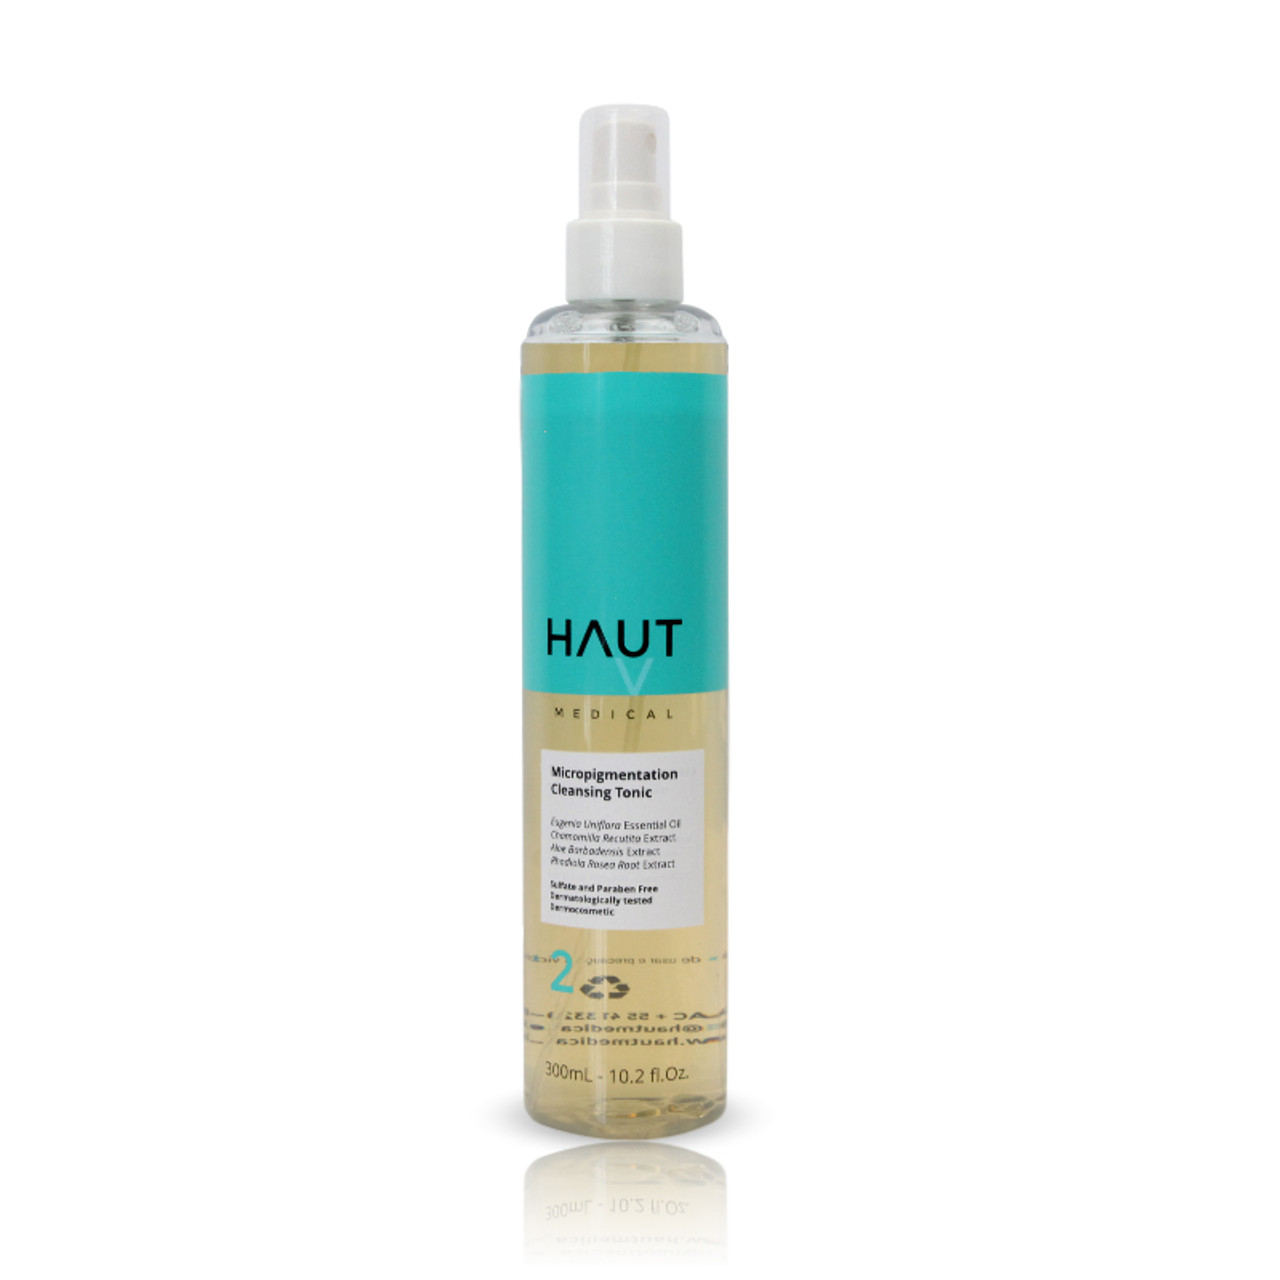 Micropigmentation Cleansing Tonic Step 2 - Permanent Makeup (PMU) and Body Tattooing - 300ml - 10.2 fl.Oz.